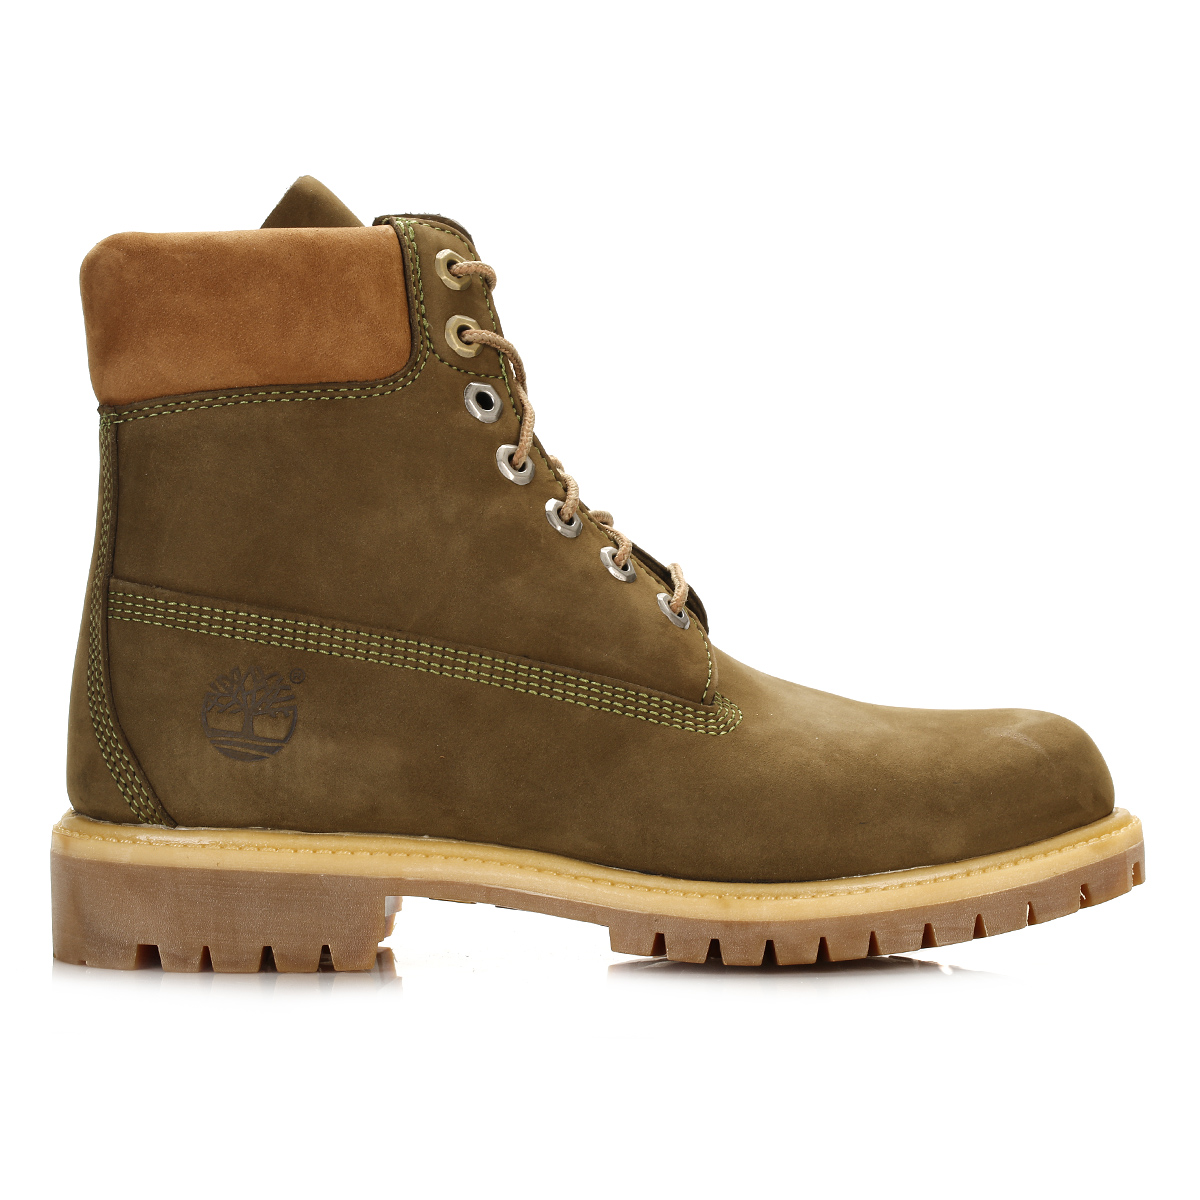 timberland mens olive green ankle boots waterproof